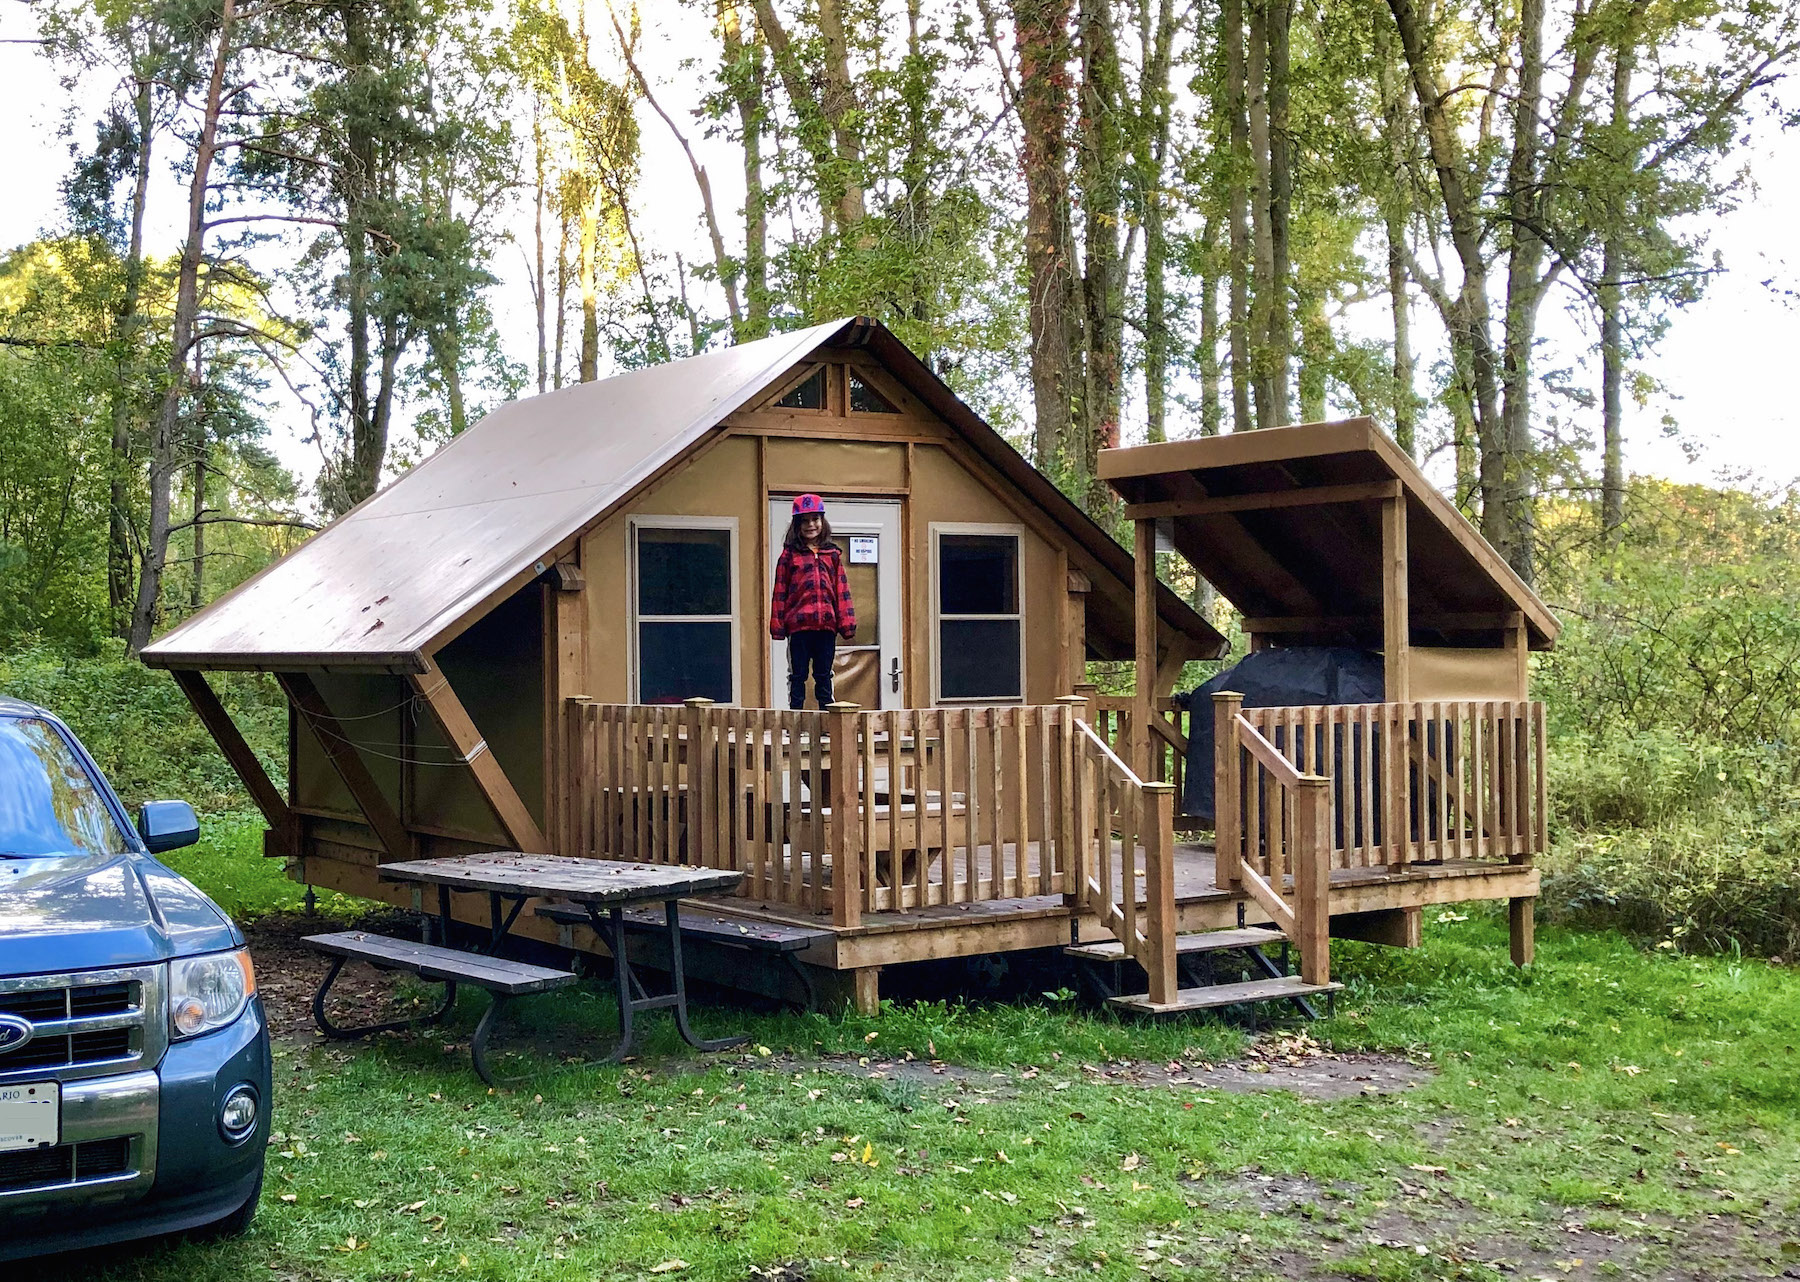 Presquile Provincial Park, Falling For the Minka Tent | Kathryn Anywhere